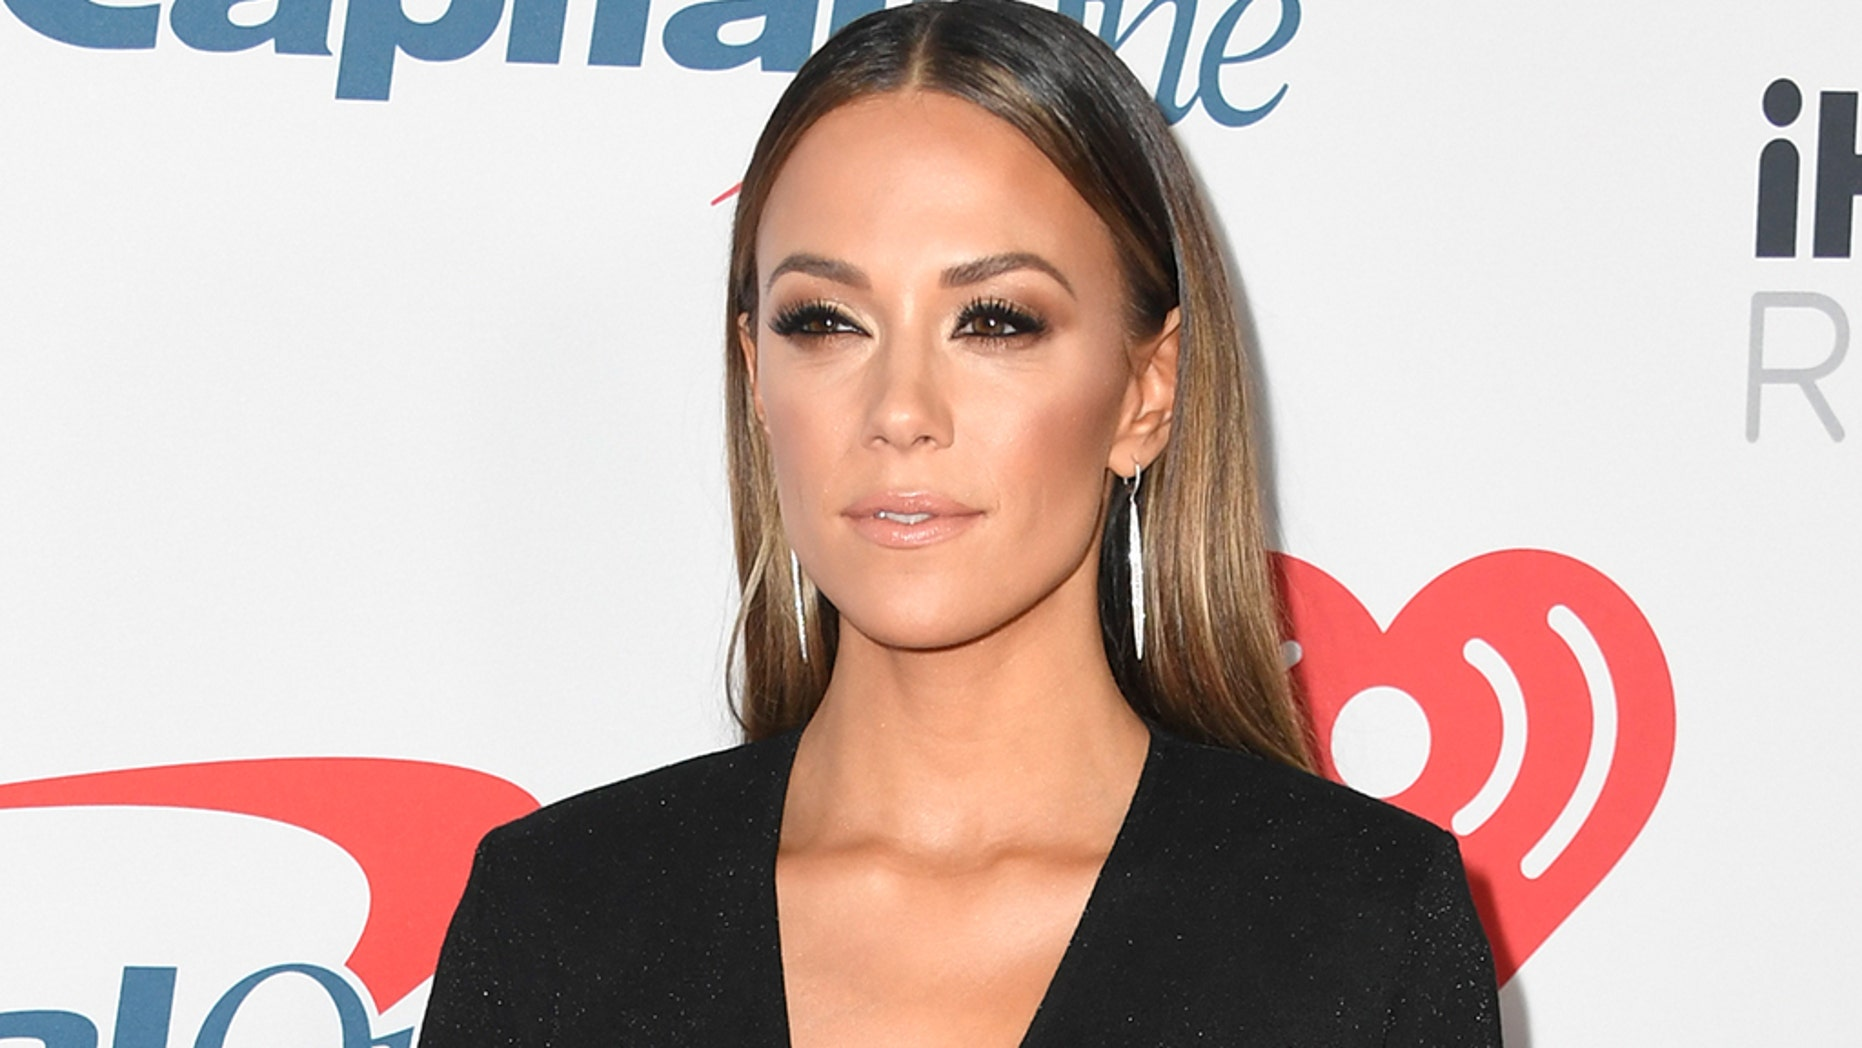 Jana Kramer is opening up about her miscarriages.